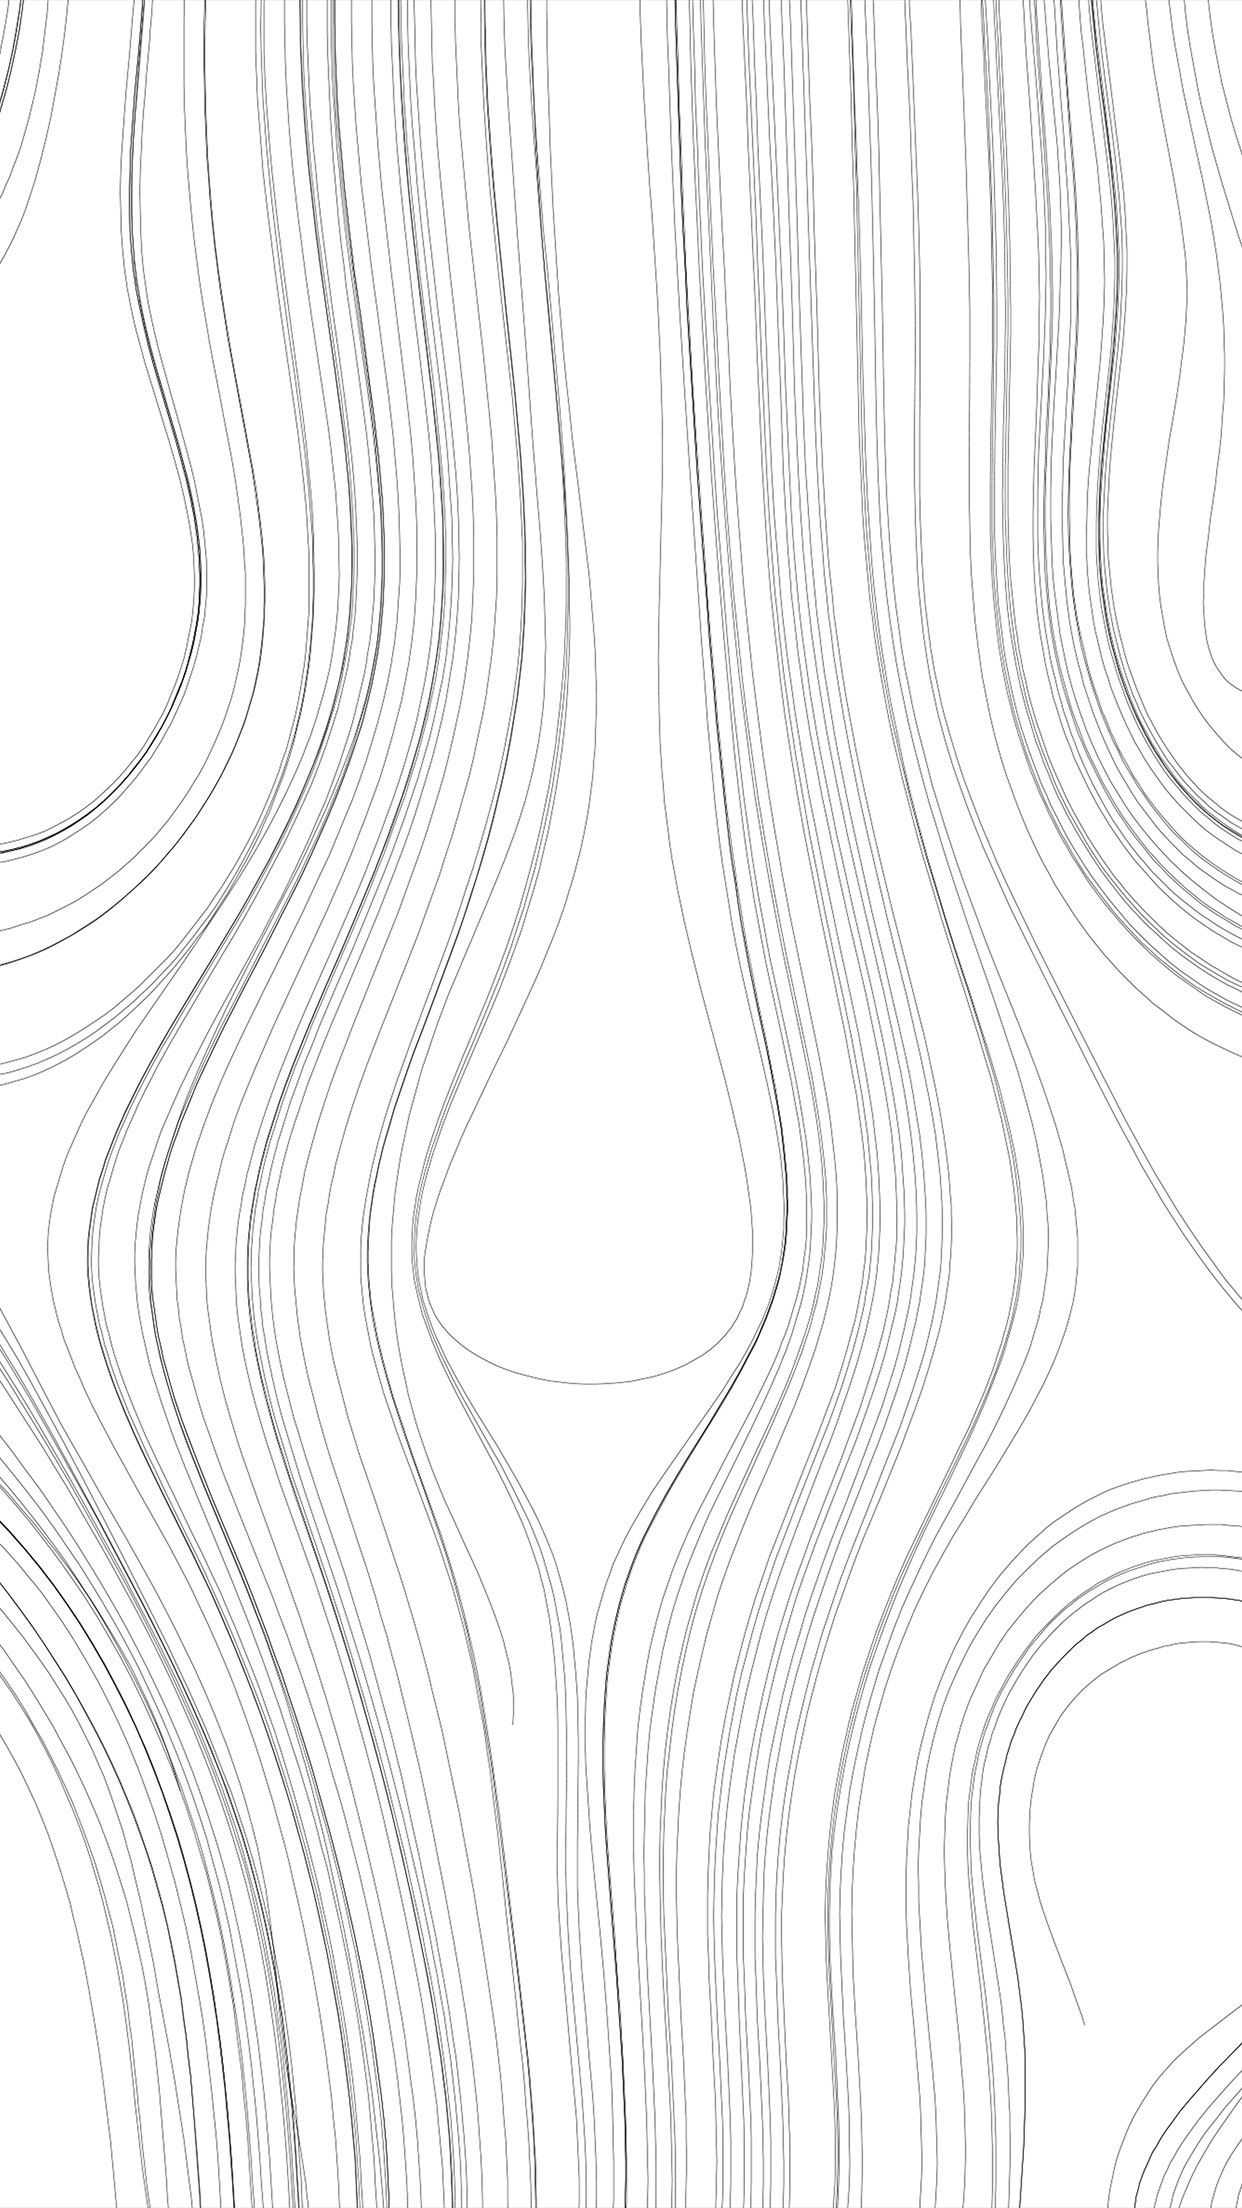 vn89-lines-curve-white-bw-pattern-wallpaper